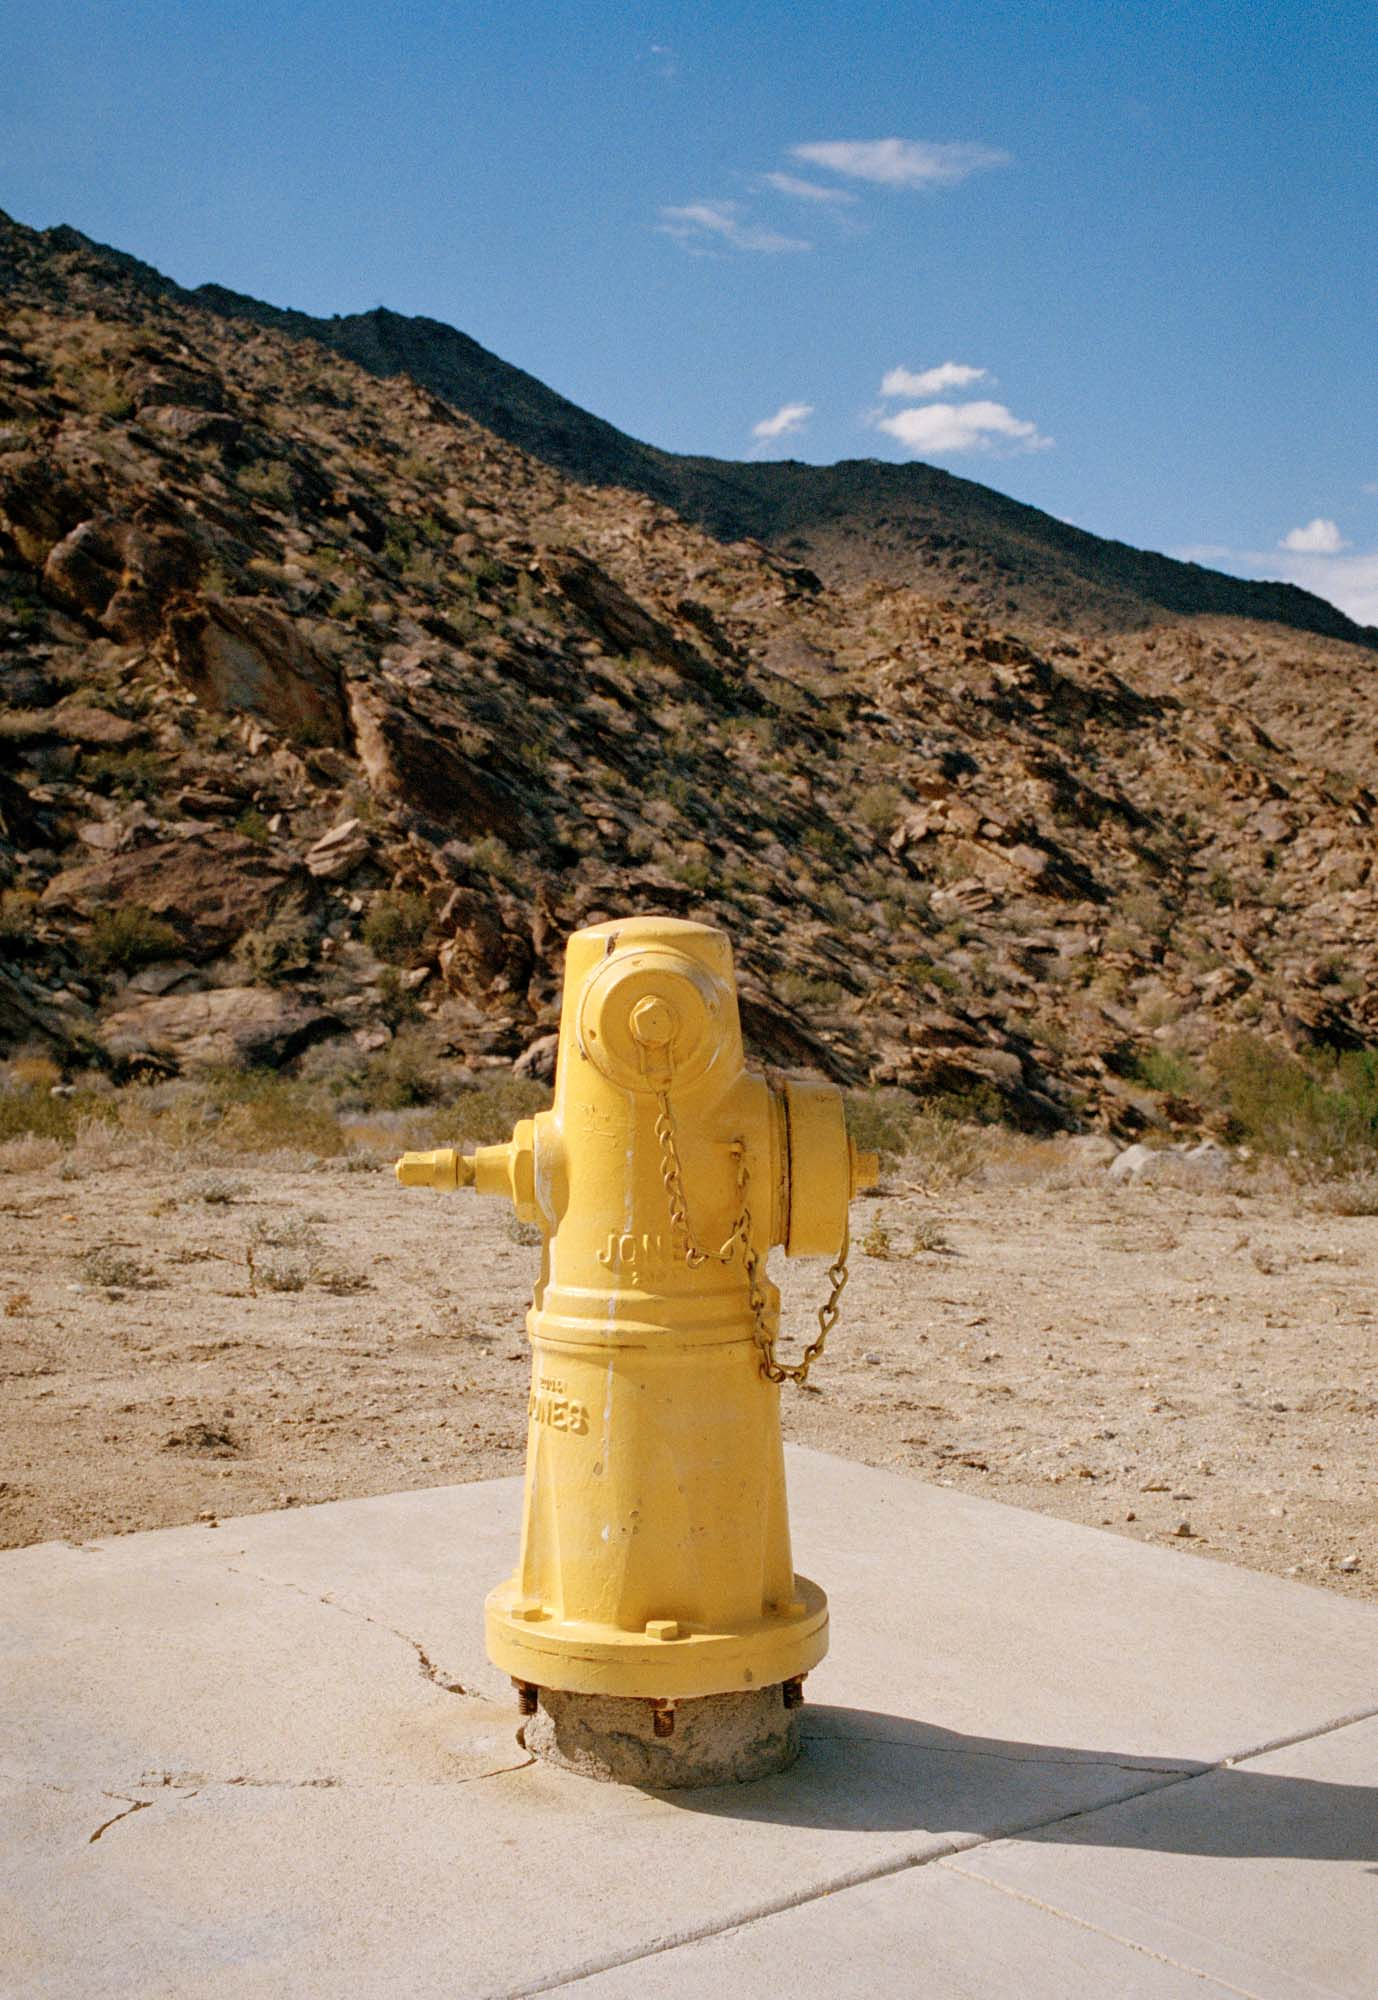 A photography of a yellow fire hydrant sitting in the desert of Palm Springs California.